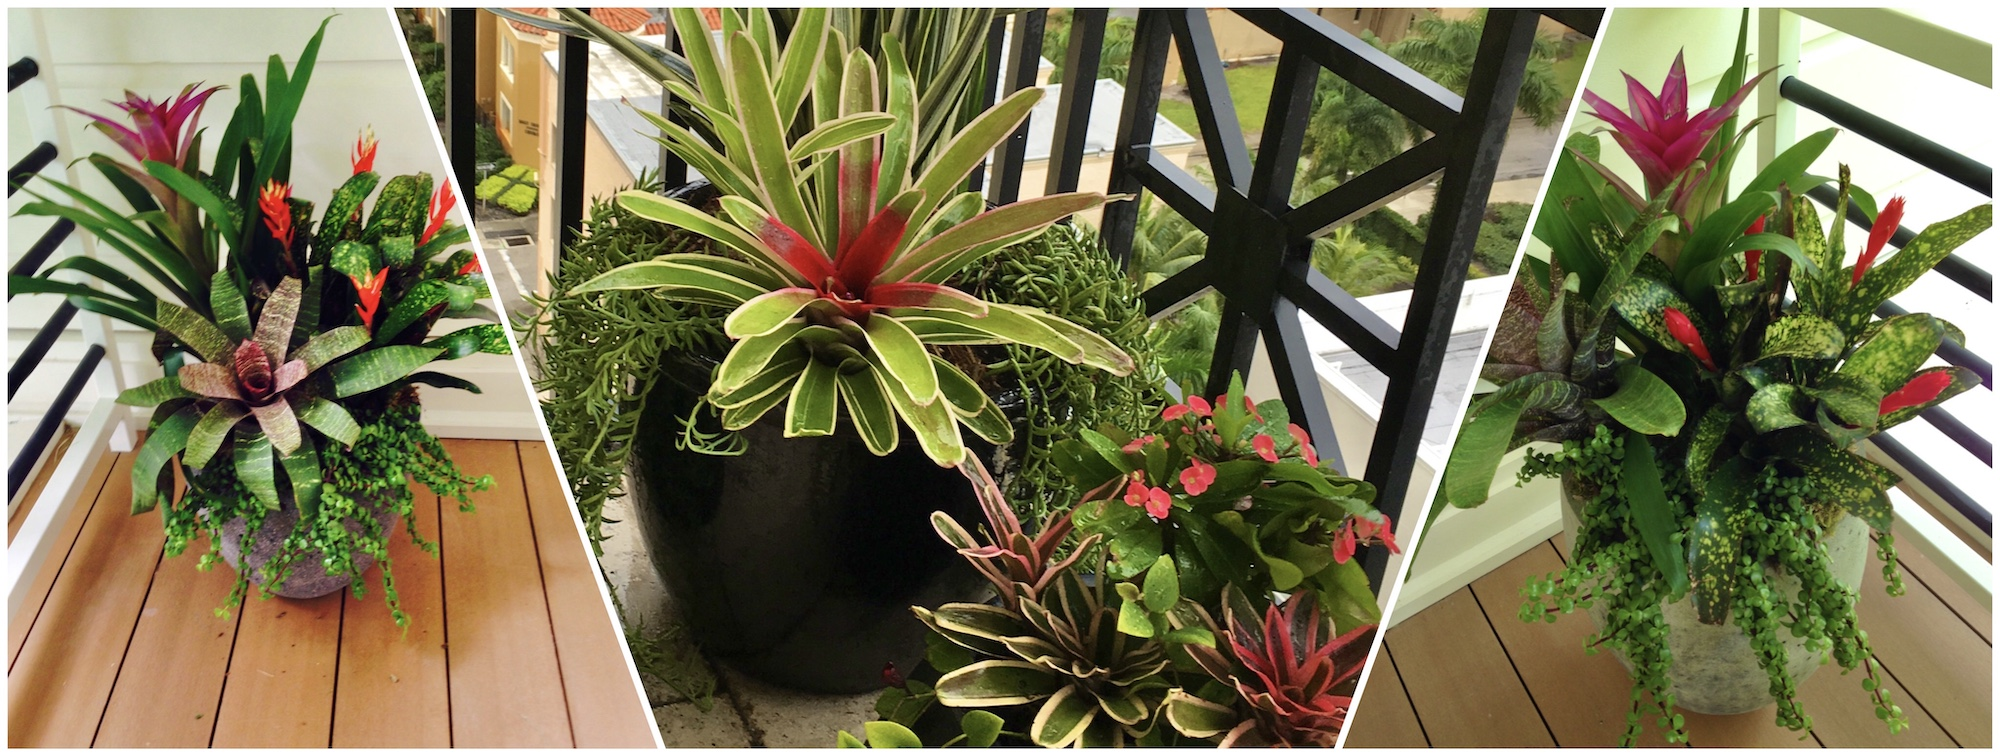 Outdoor Floral and Plant Decor Service - West Palm Beach, FL Velene's Floral